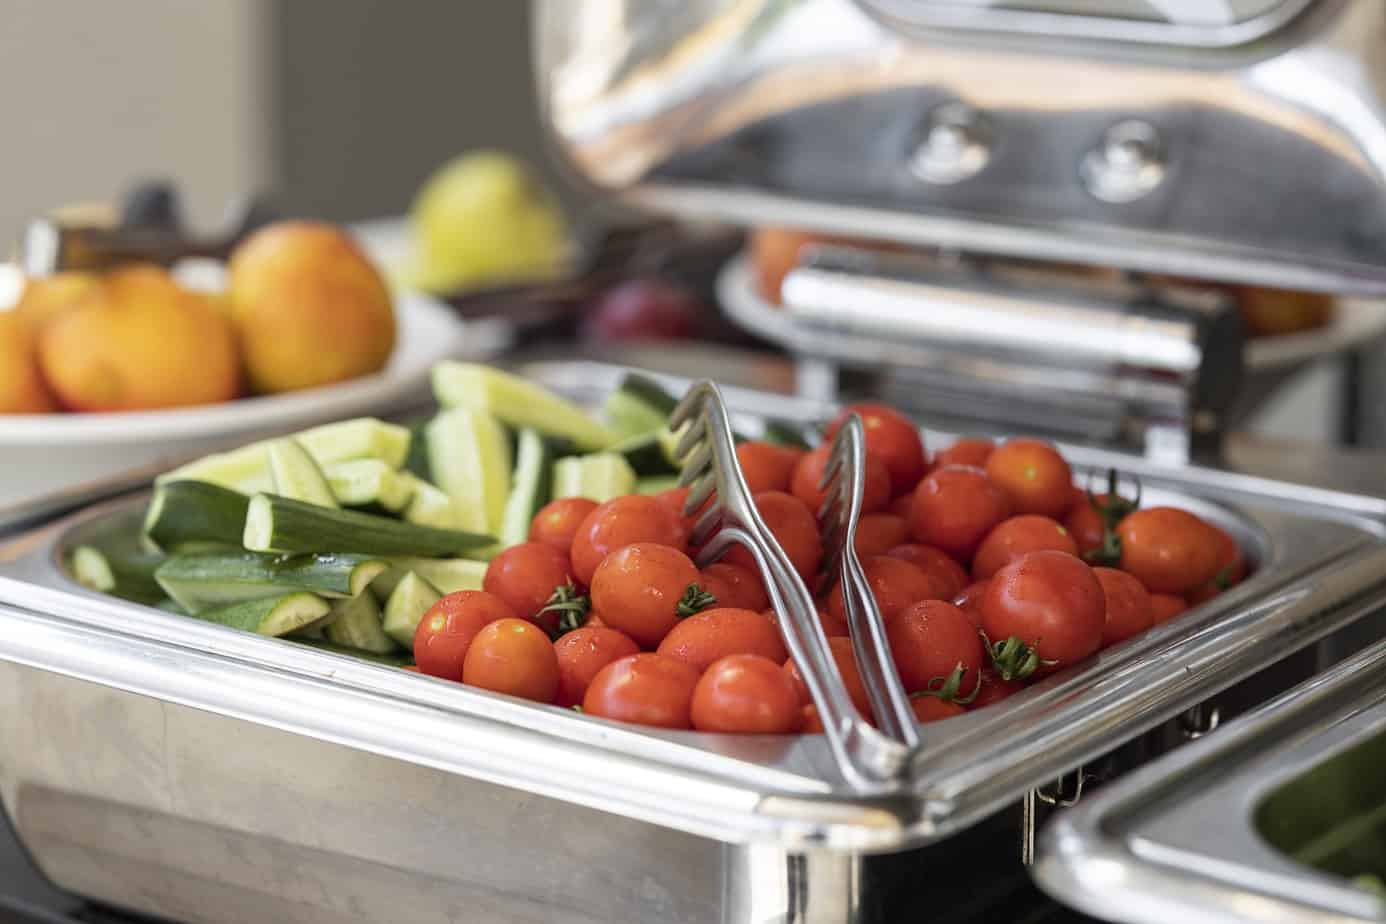 Uses for a Chafing Dish